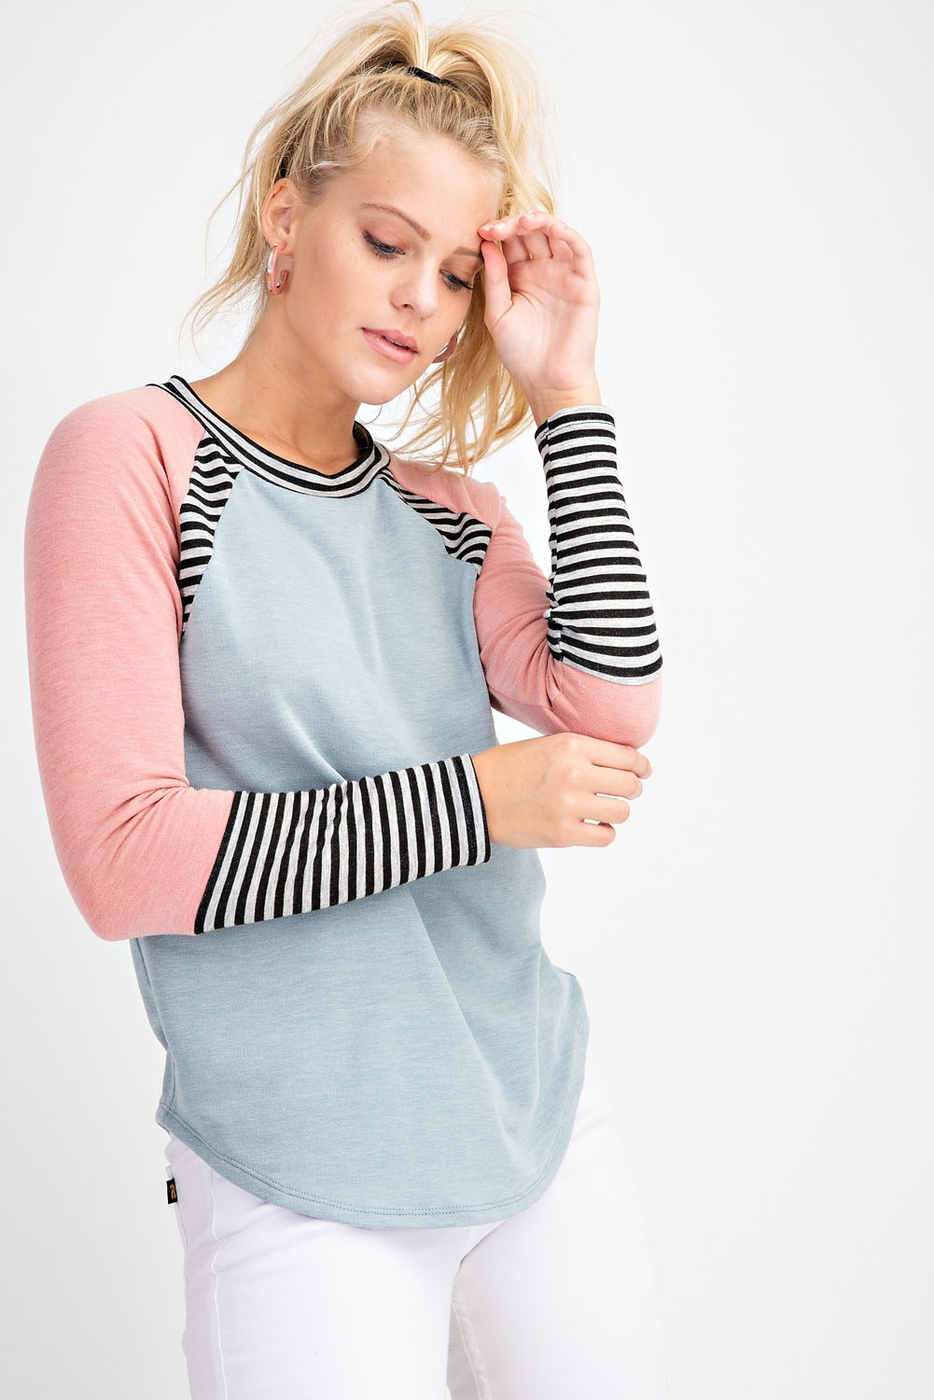 RAGLAN COLOR BLOCK FRENCH TERRY TOP - orangeshine.com